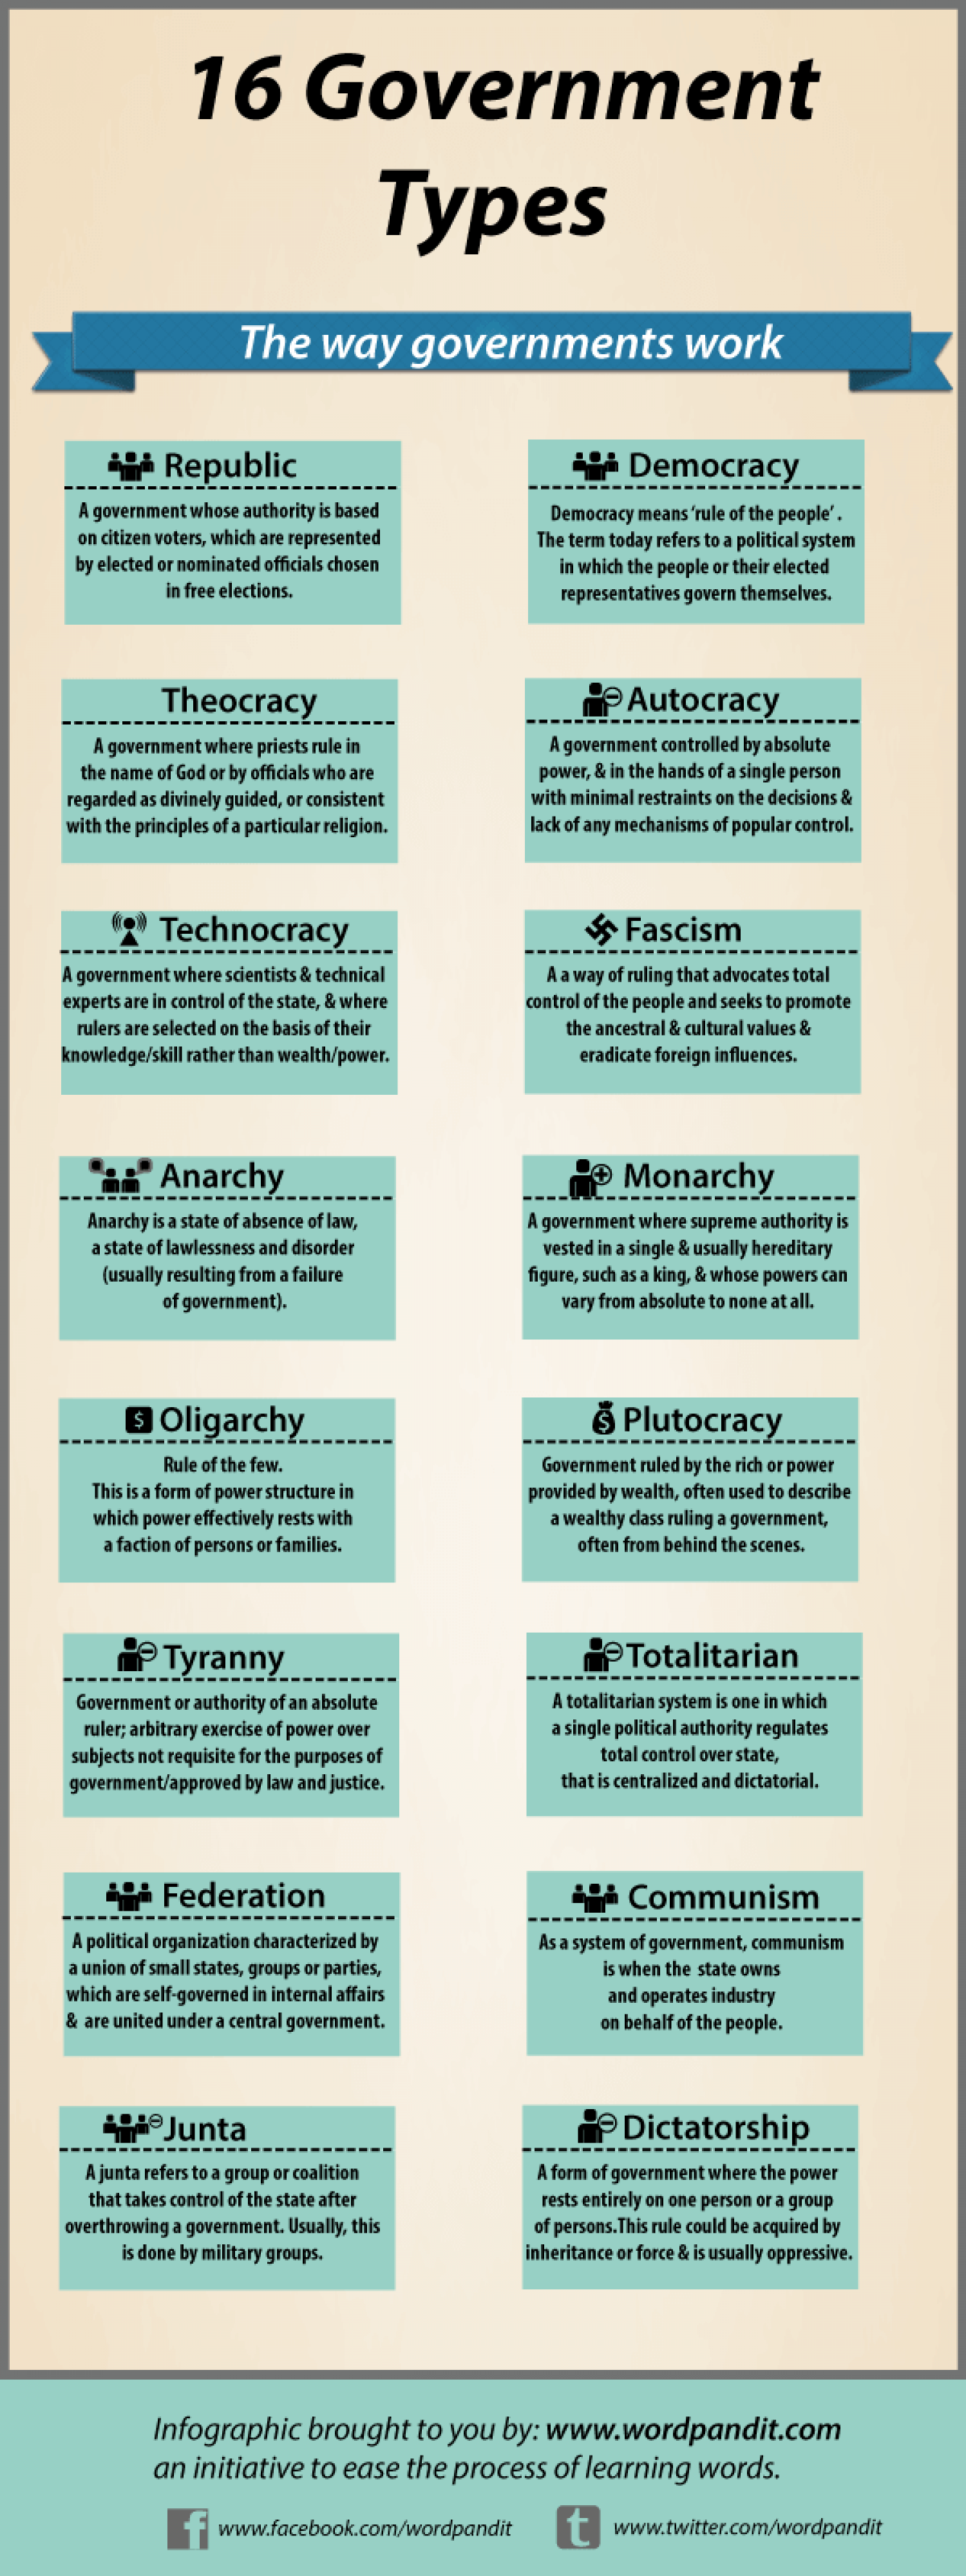 types of governments infographic